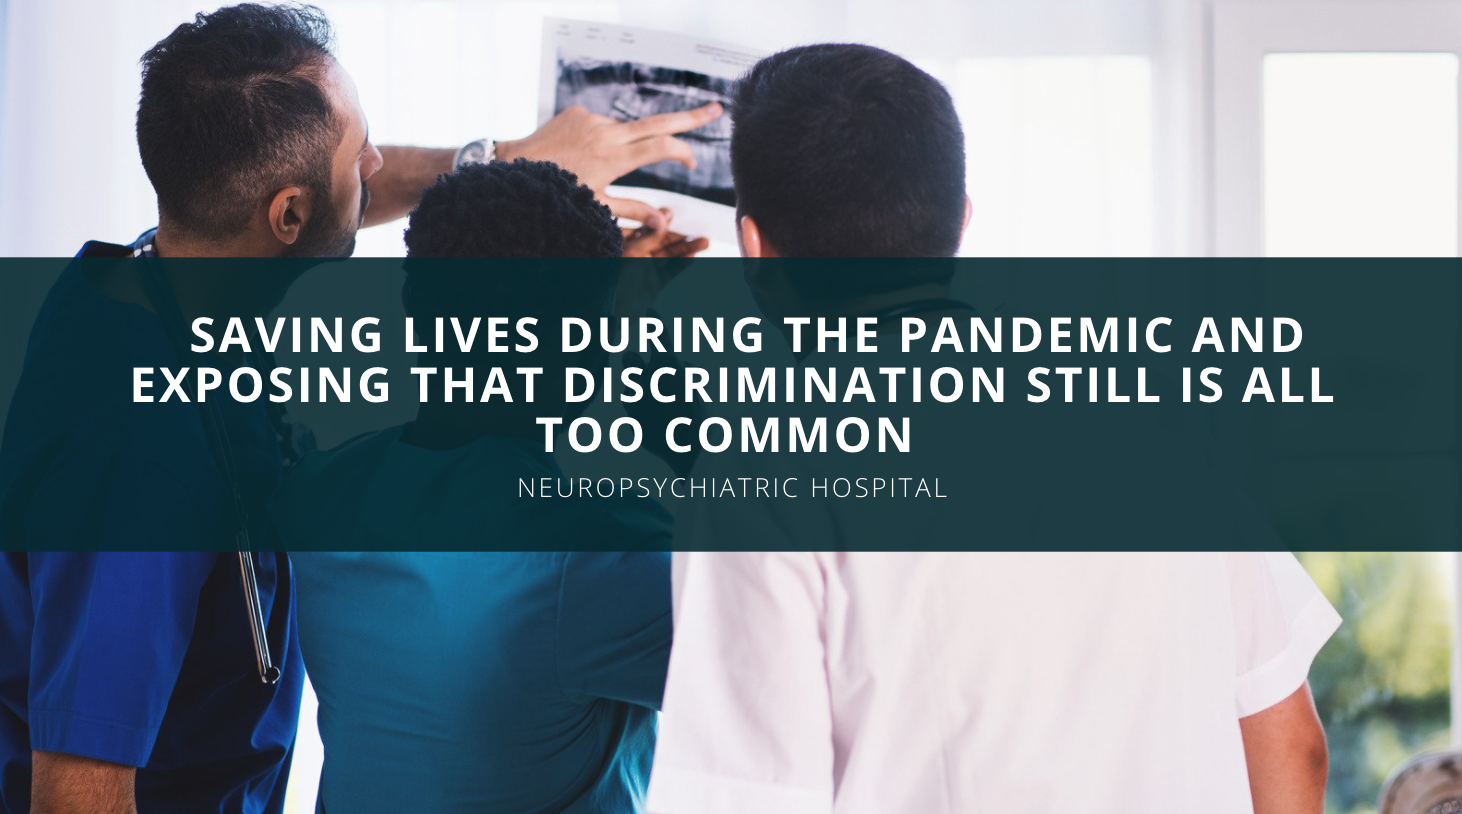 How the NeuroPsychiatric Hospitals System is Saving Lives During the Pandemic and Exposing that Discrimination Still is All Too Common